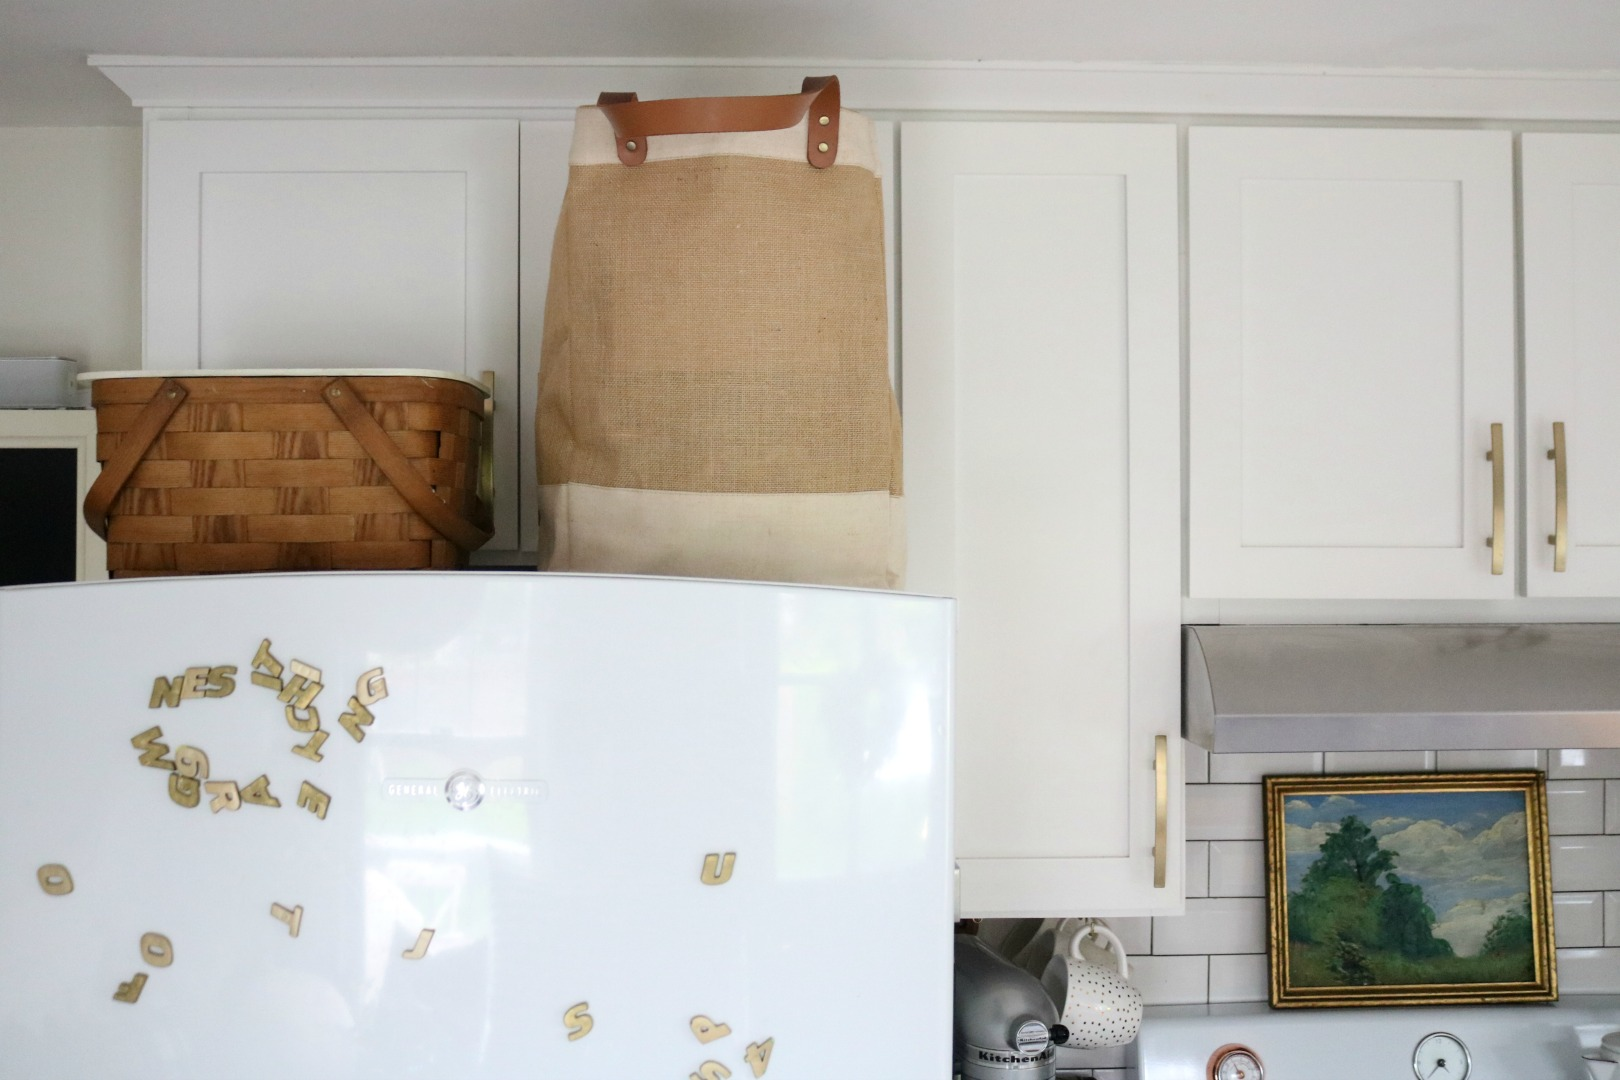 Kitchen Organizing Tips - Small Space Living